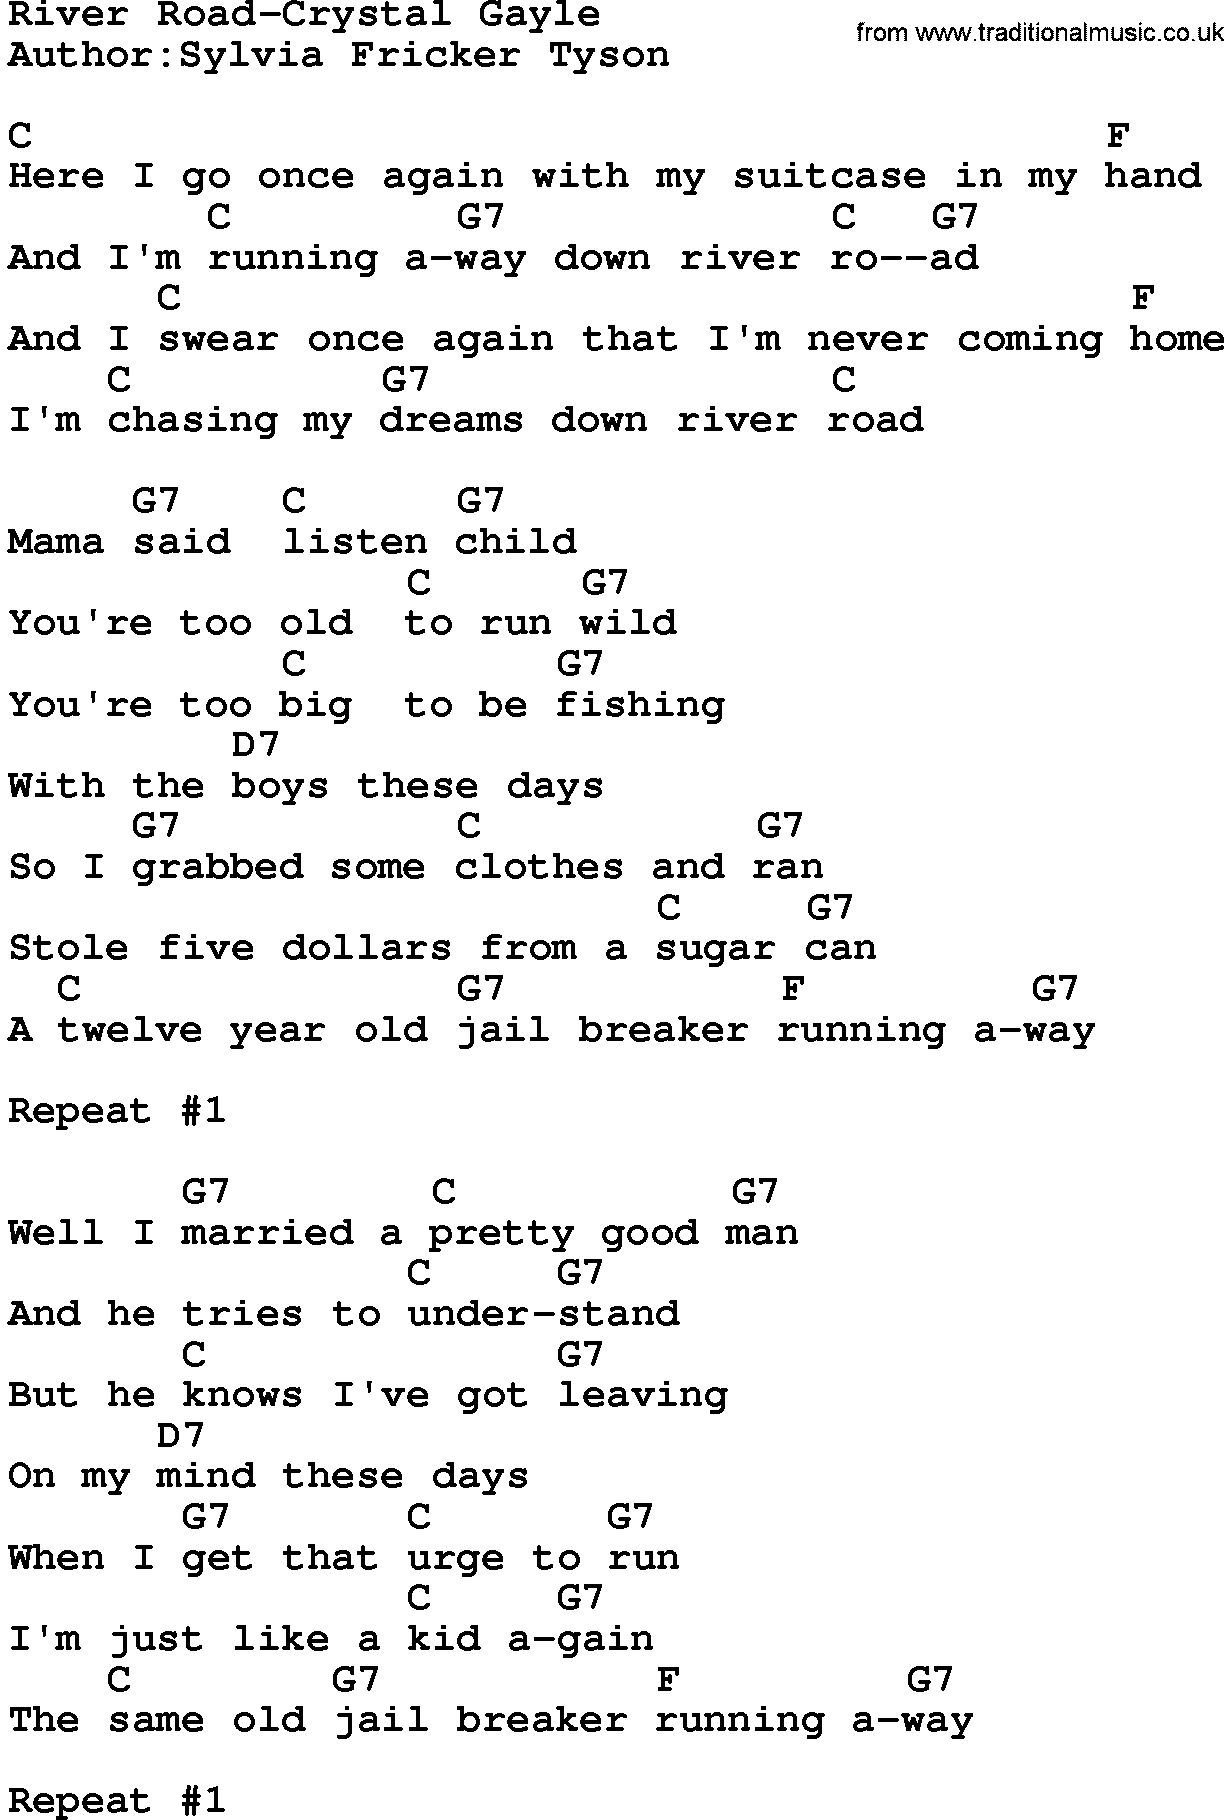 Rivers And Roads Chords Country Musicriver Road Crystal Gayle Lyrics And Chords